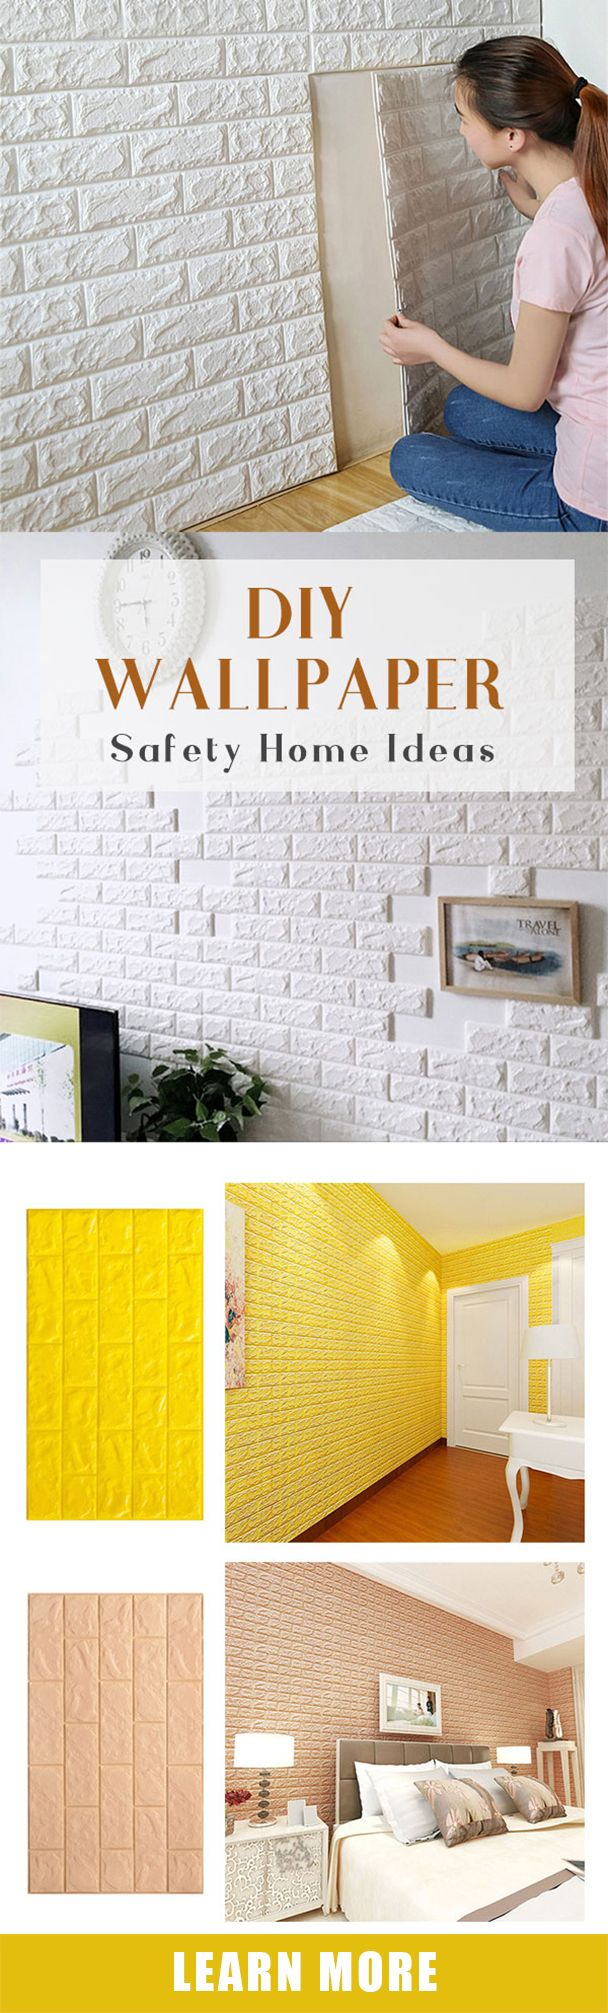 DIY the wall decoration with creative wall paper design#newchic#walldecor#wallart#living#kitchen#bedroom